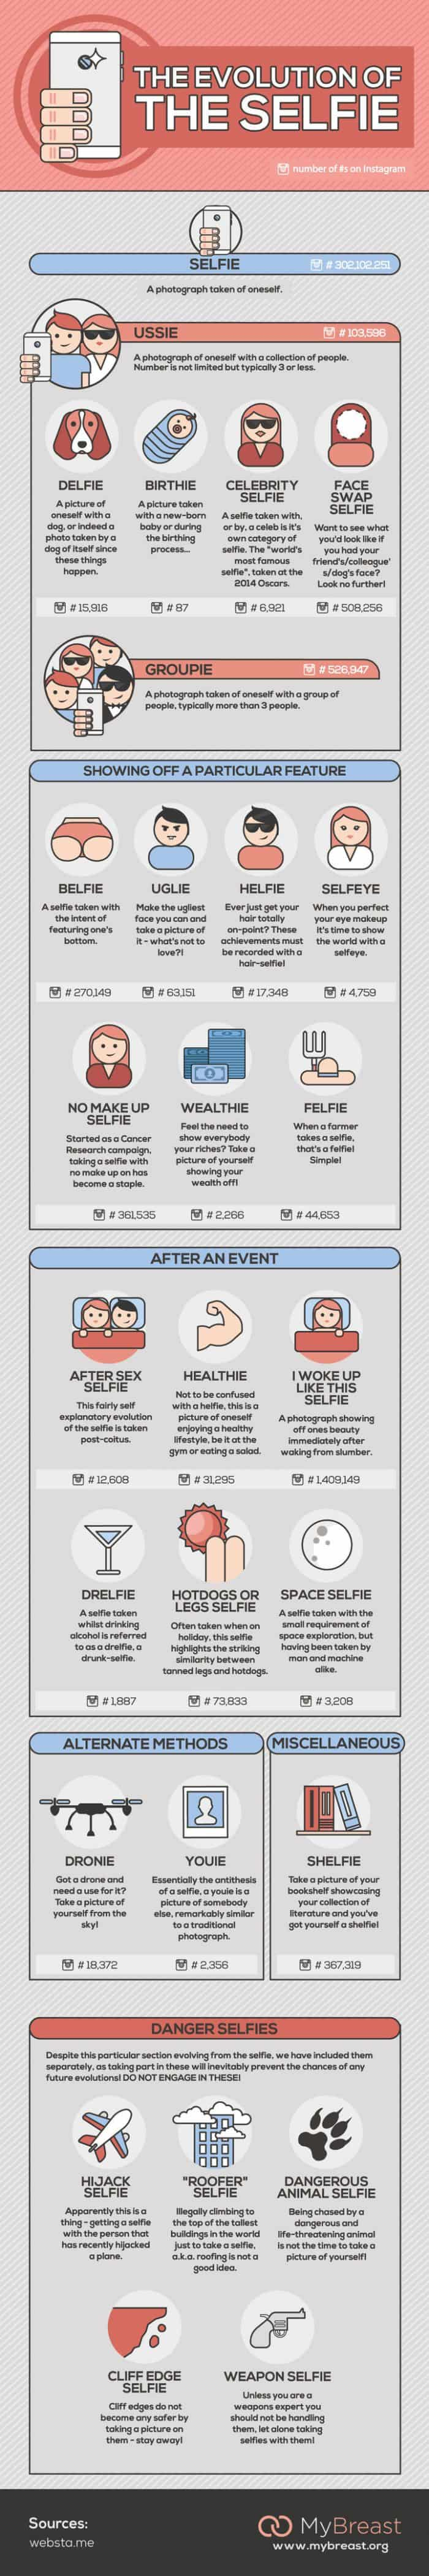 infographic describes different types of selfies